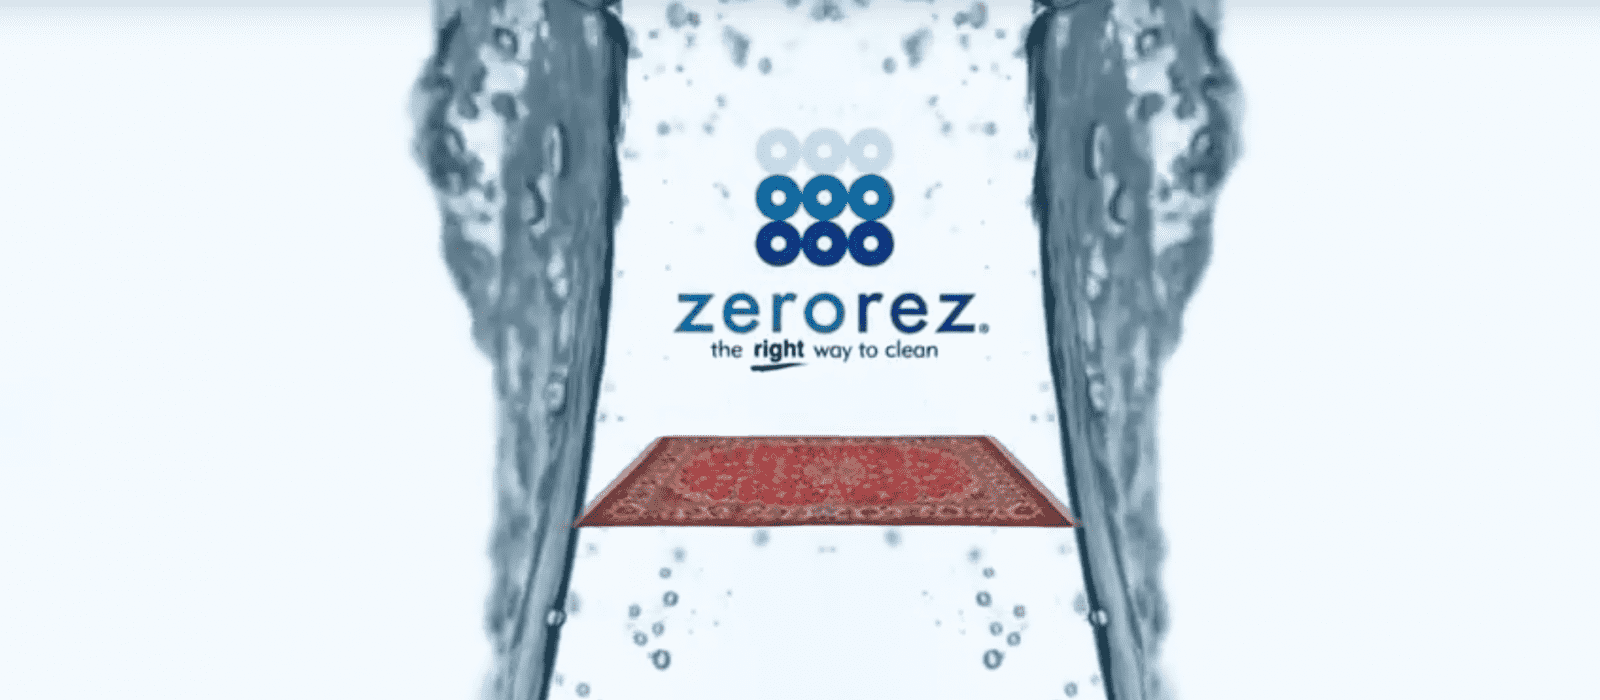 Zerorez Carpet Cleaning Spokane Wa Www Resnooze Com